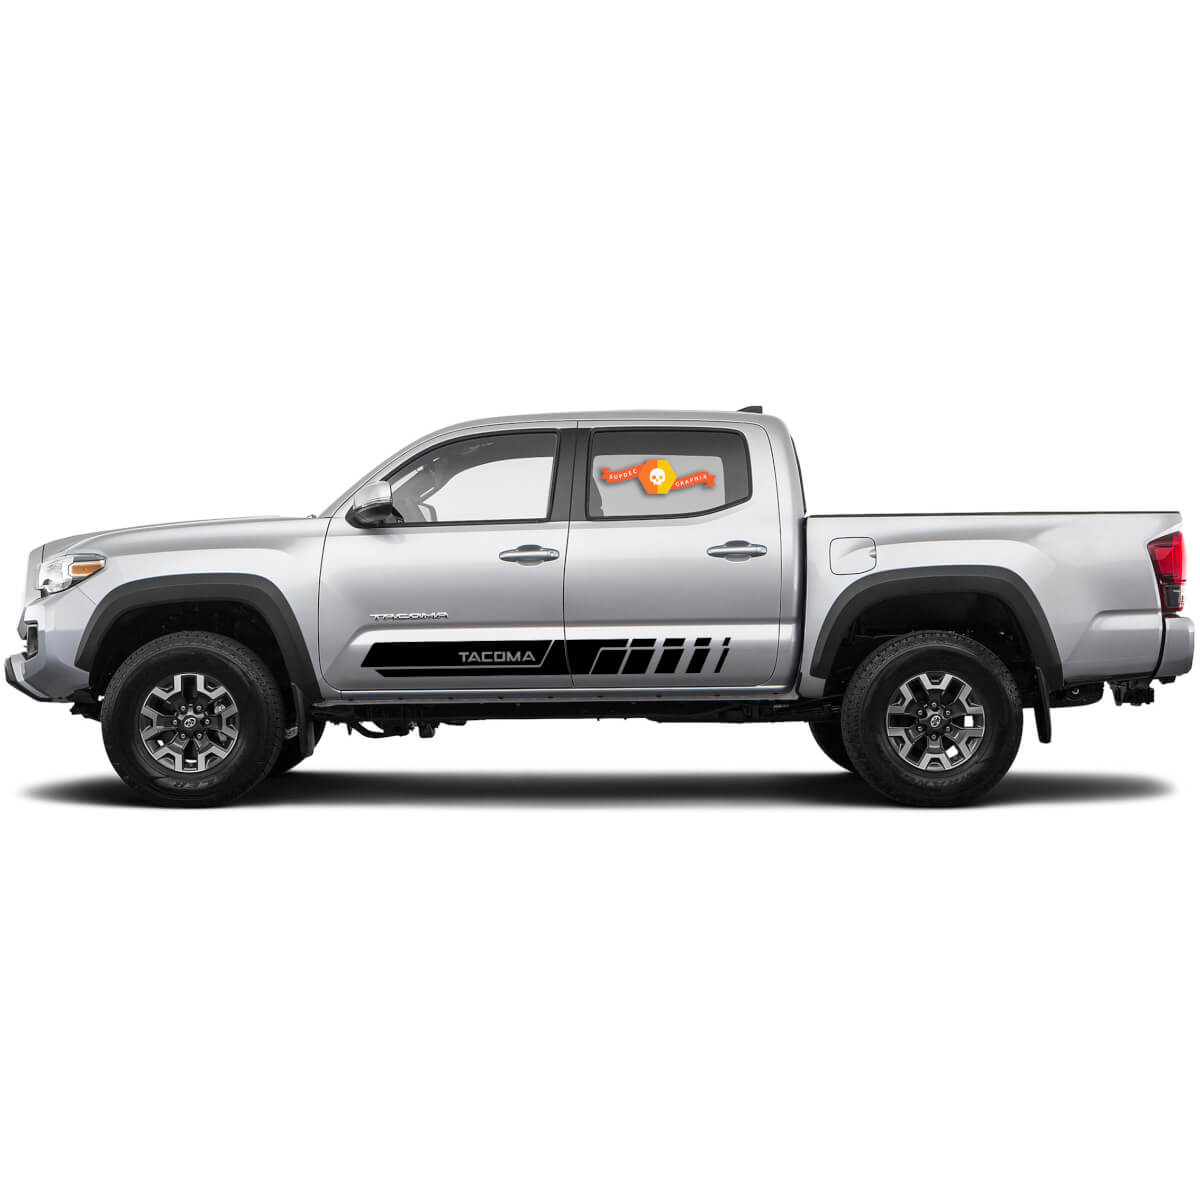 Tacoma Rocker panel 4x4 Off-Road Side Vinyl Stickers Decal Stripes